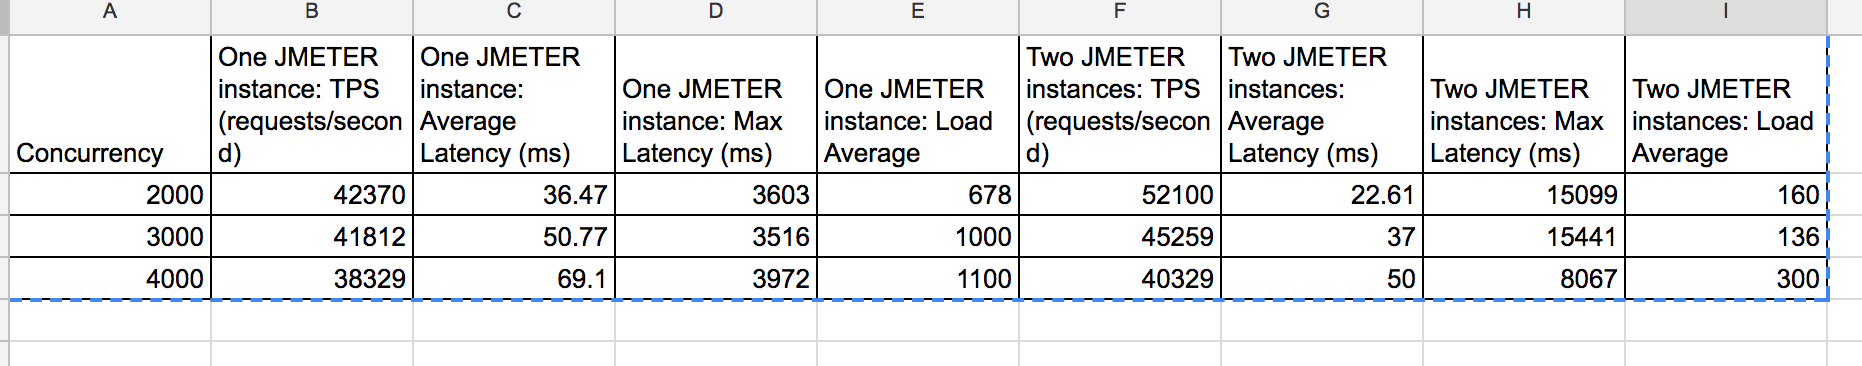 Achieving Better Performance Results via Remote JMETER testing